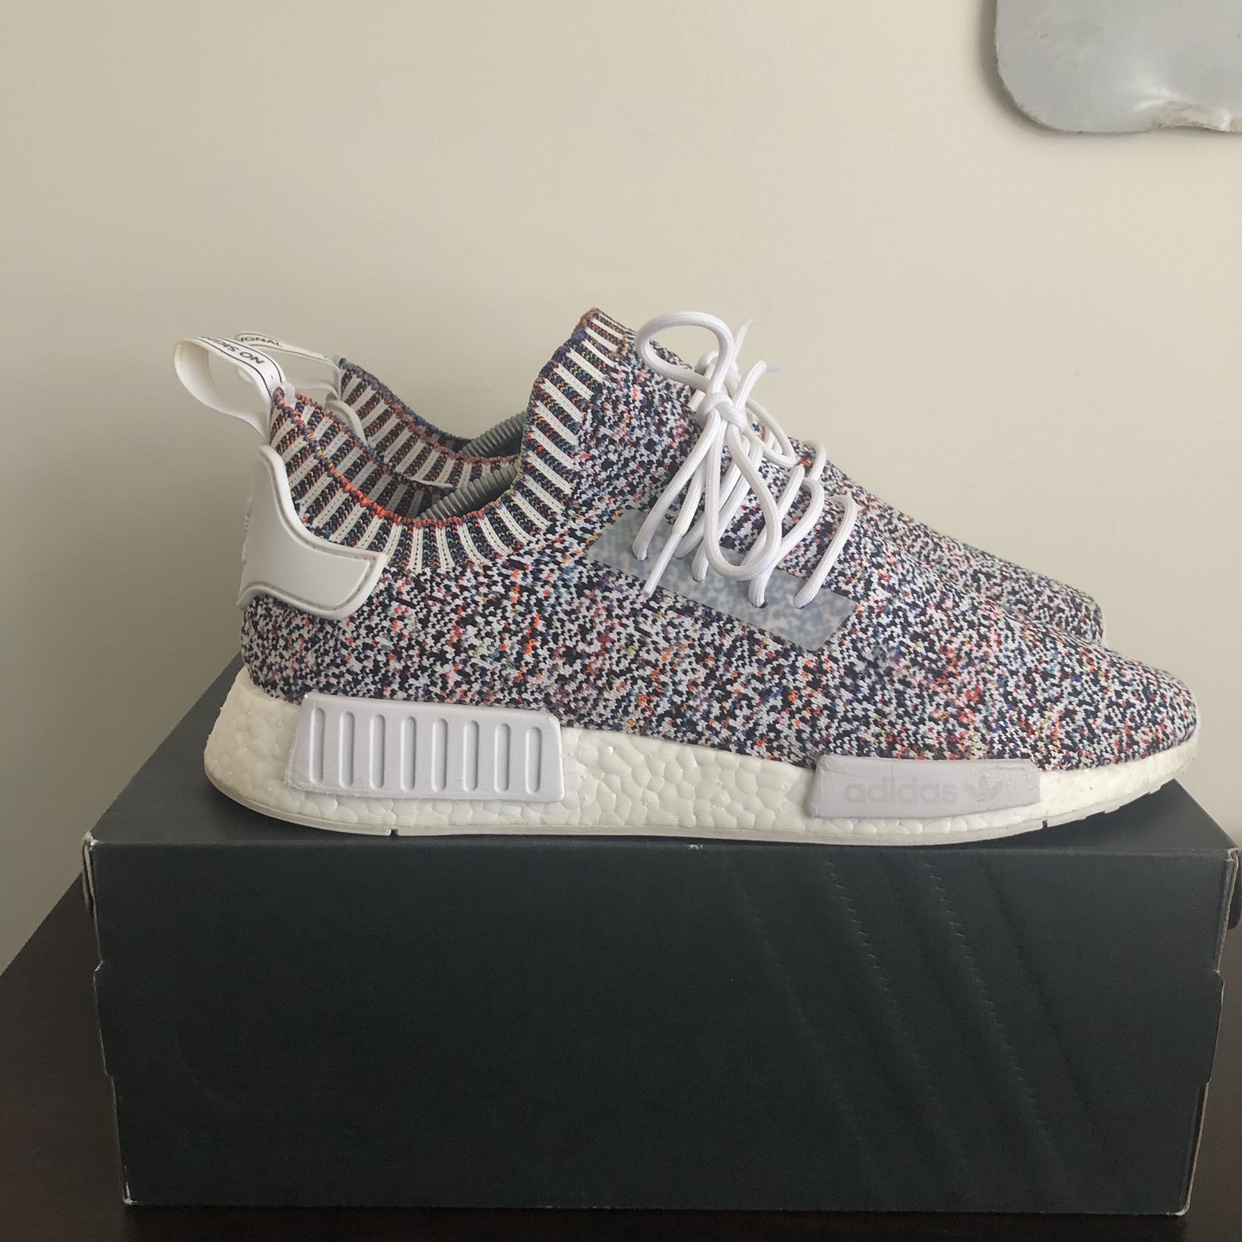 best website 669ed 8ef02 Adidas NMD R1 Static Limited, Worn 10 times and kept ...